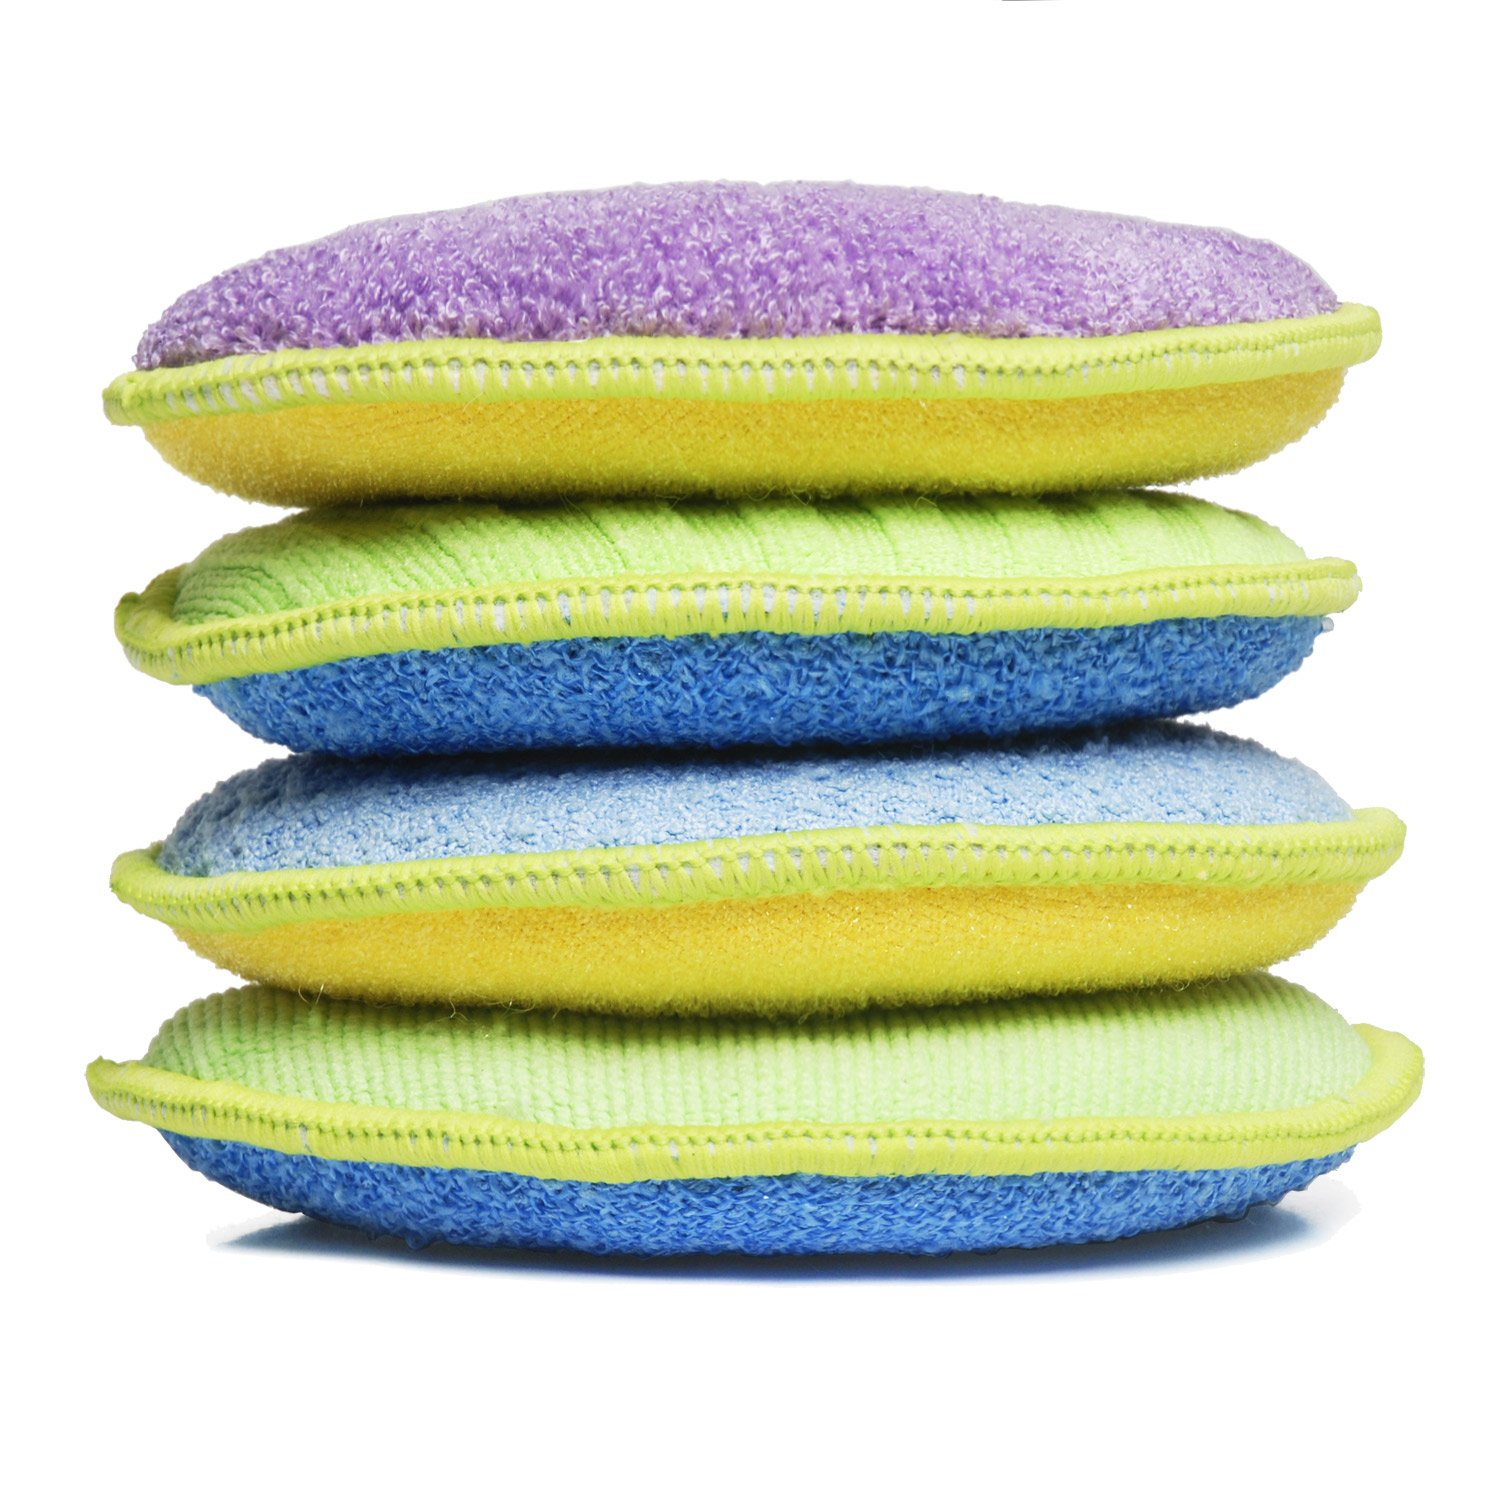 Starfiber Microfiber Kitchen Scrubbies, 4-Pack LCM Team - Starfiber amz-donut